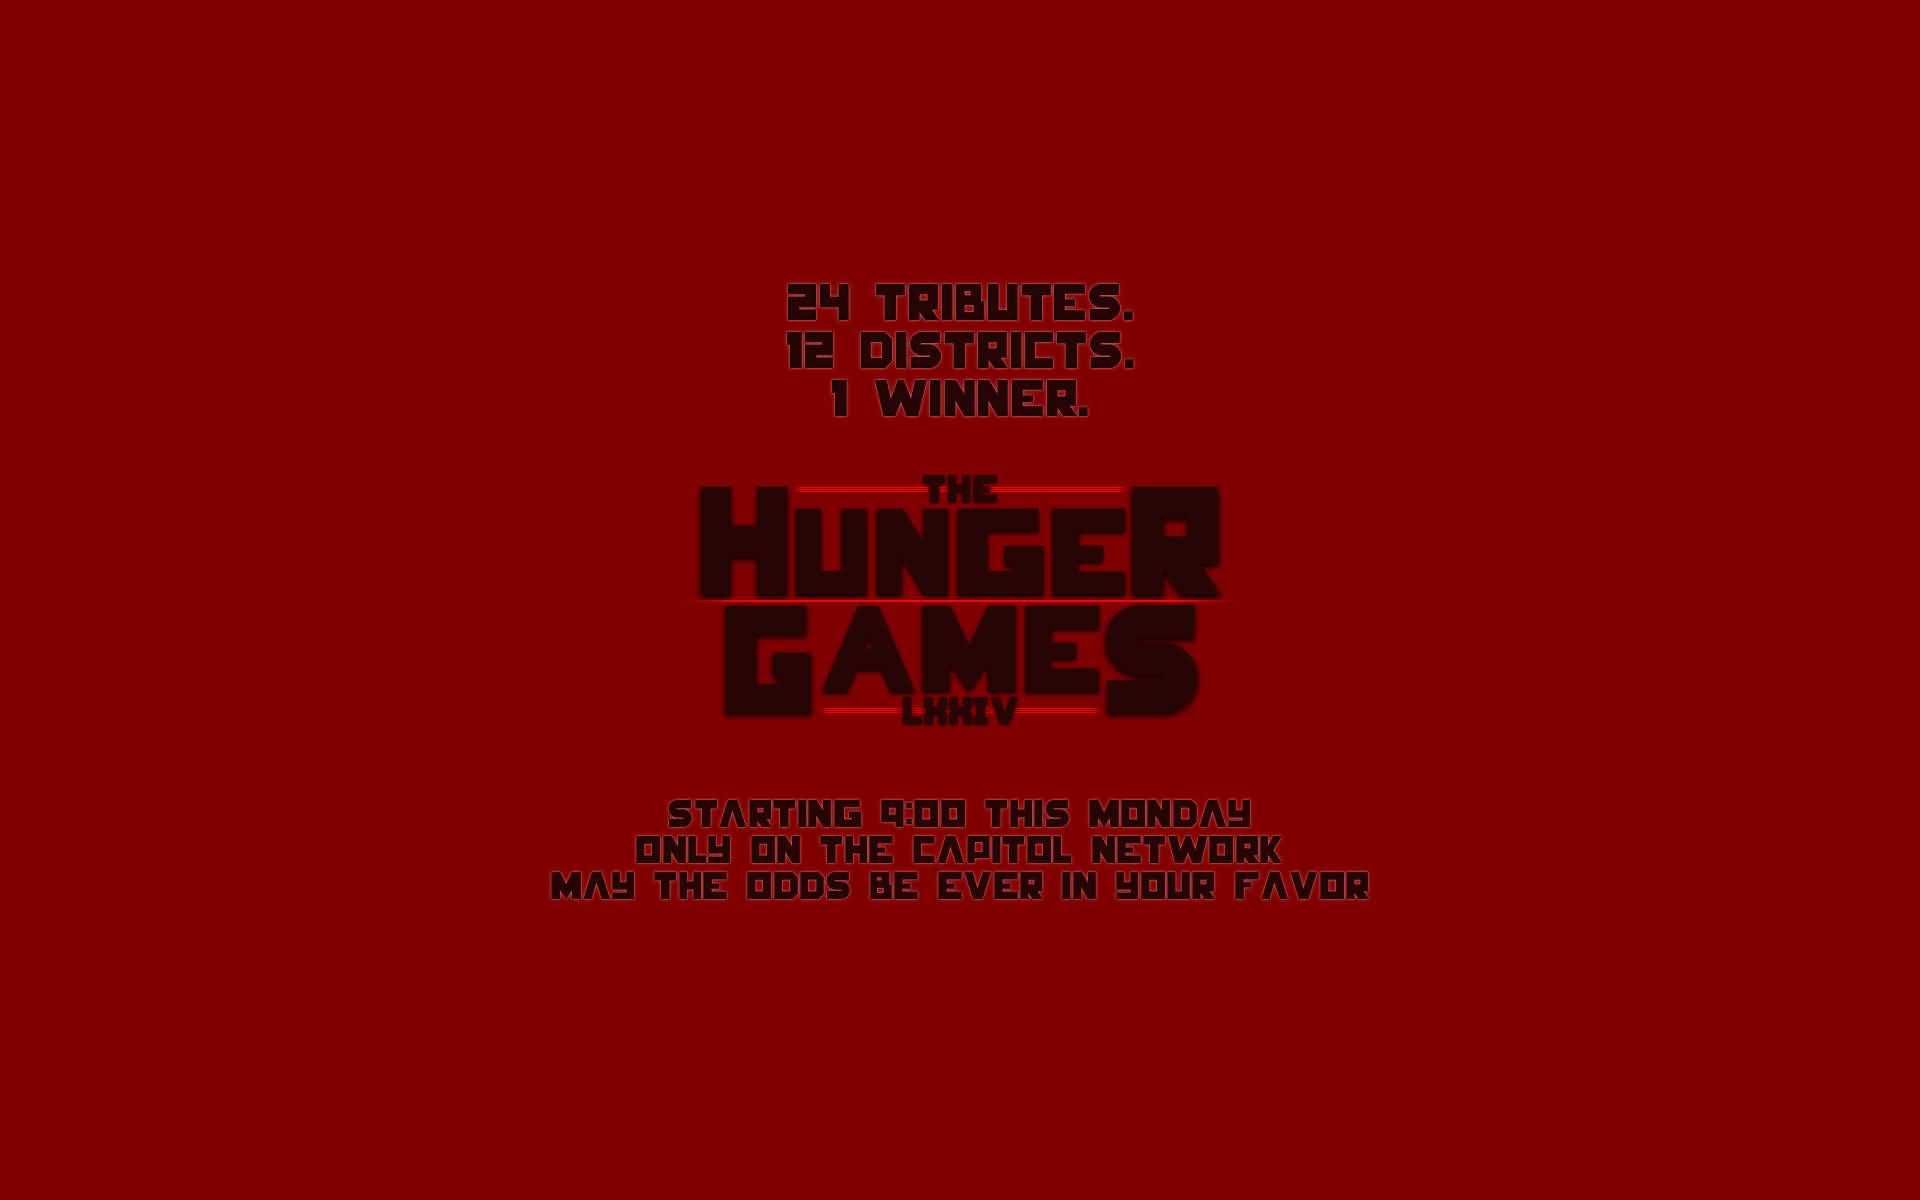 Games Quotes 24 tributes 12 districts 1 winner the hunger games